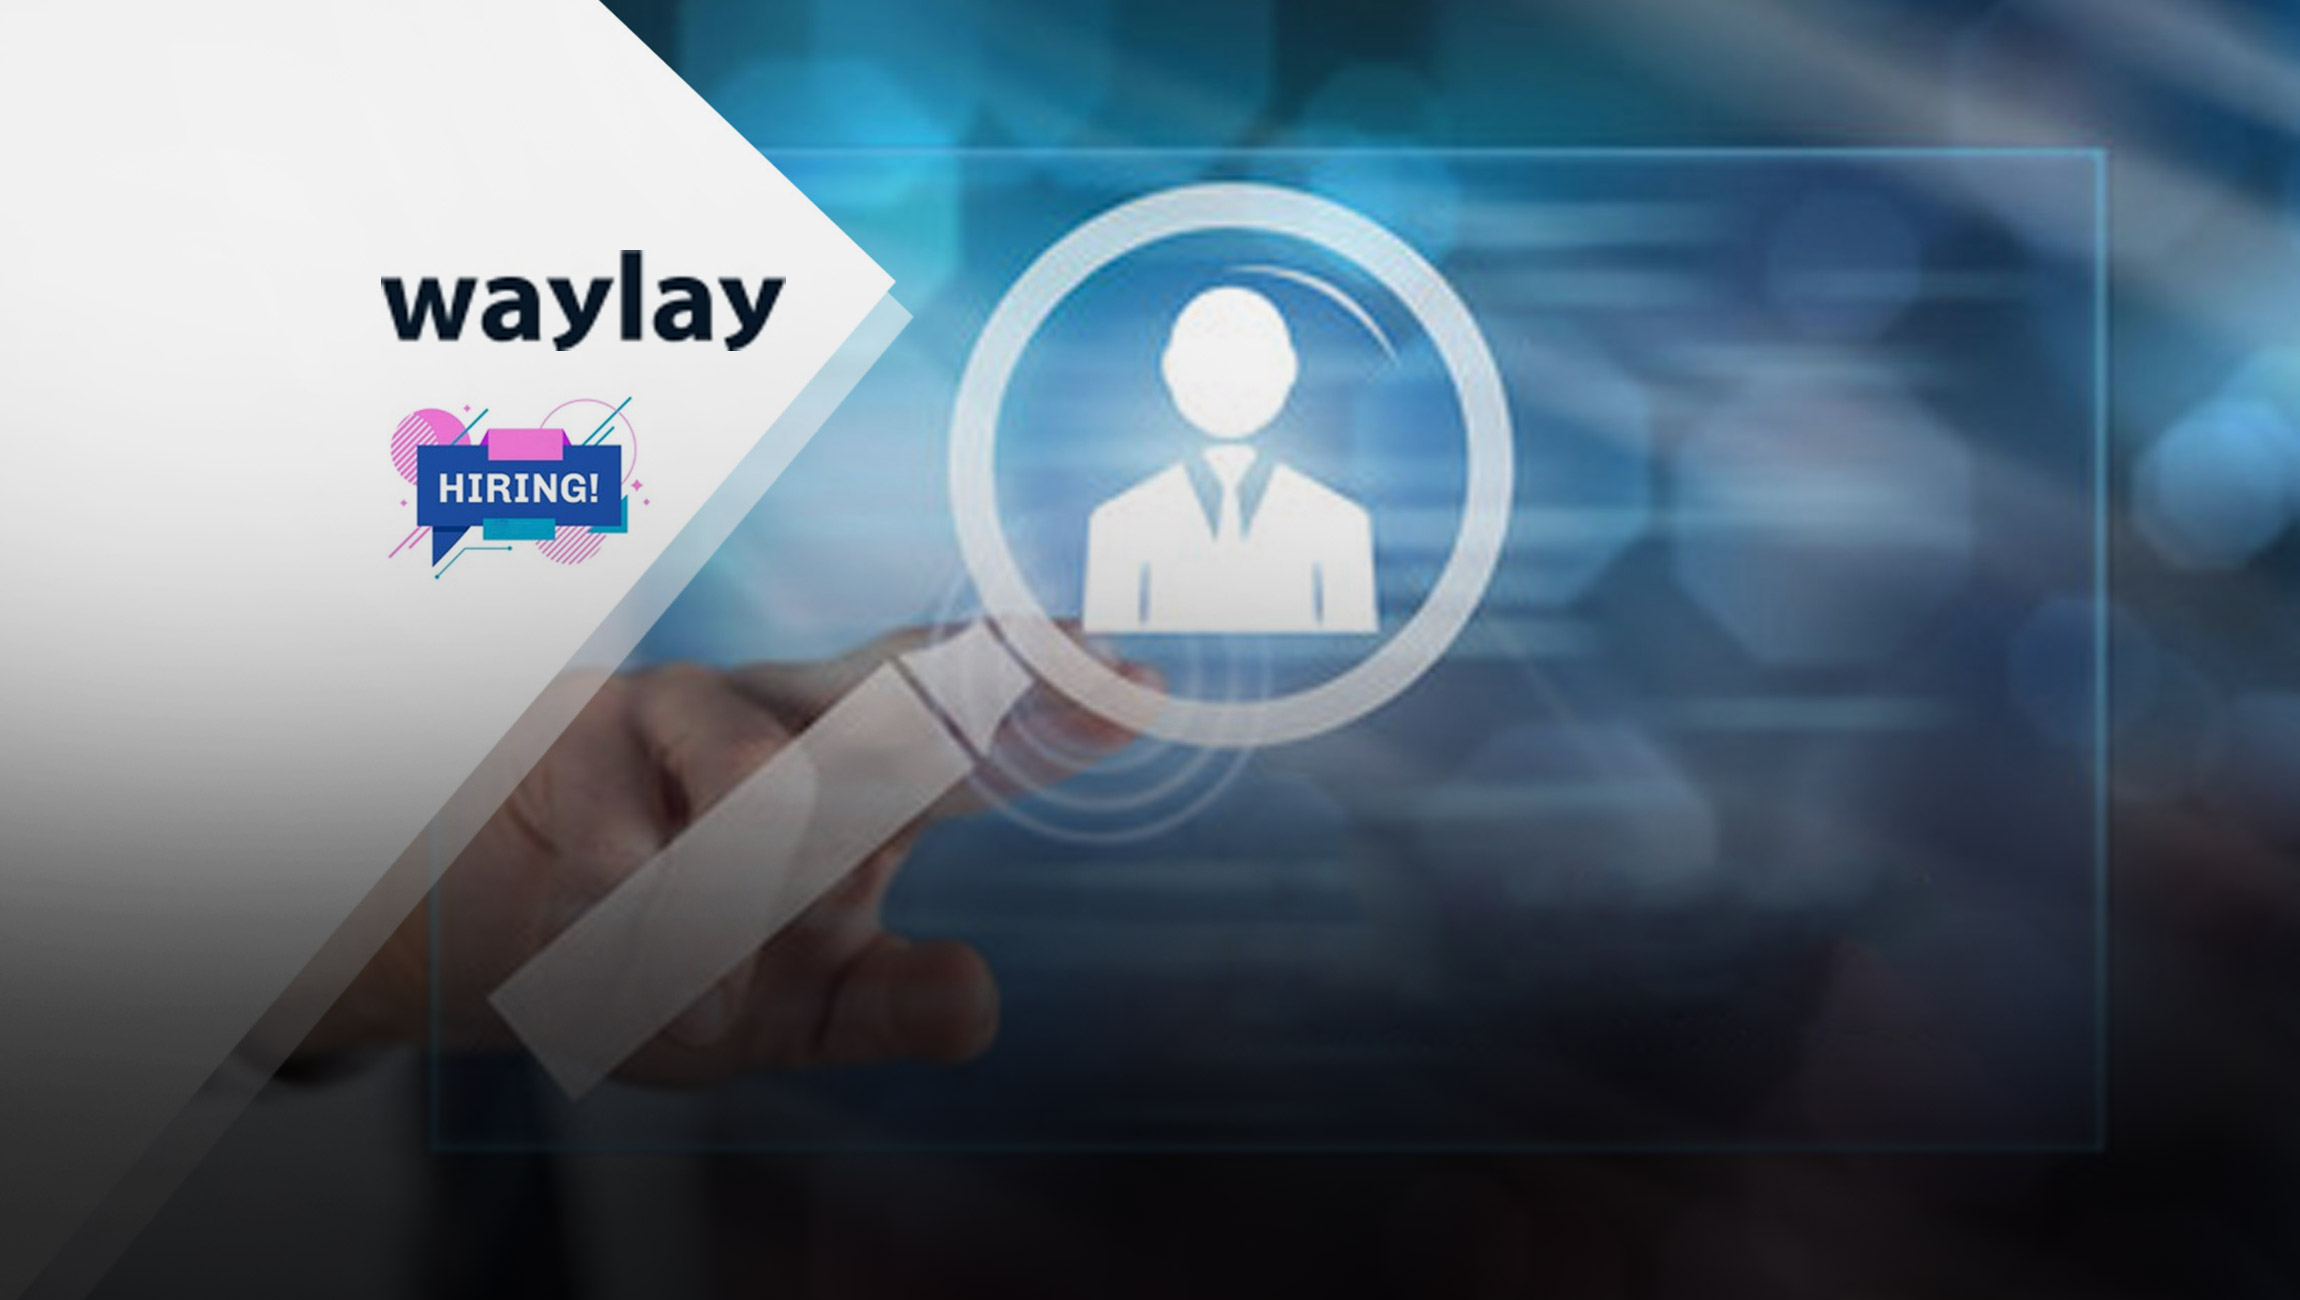 Waylay-Appoints-David-Hettinger-as-President-Waylay-North-America-Accelerating-Growth-and-Expansion-Plans